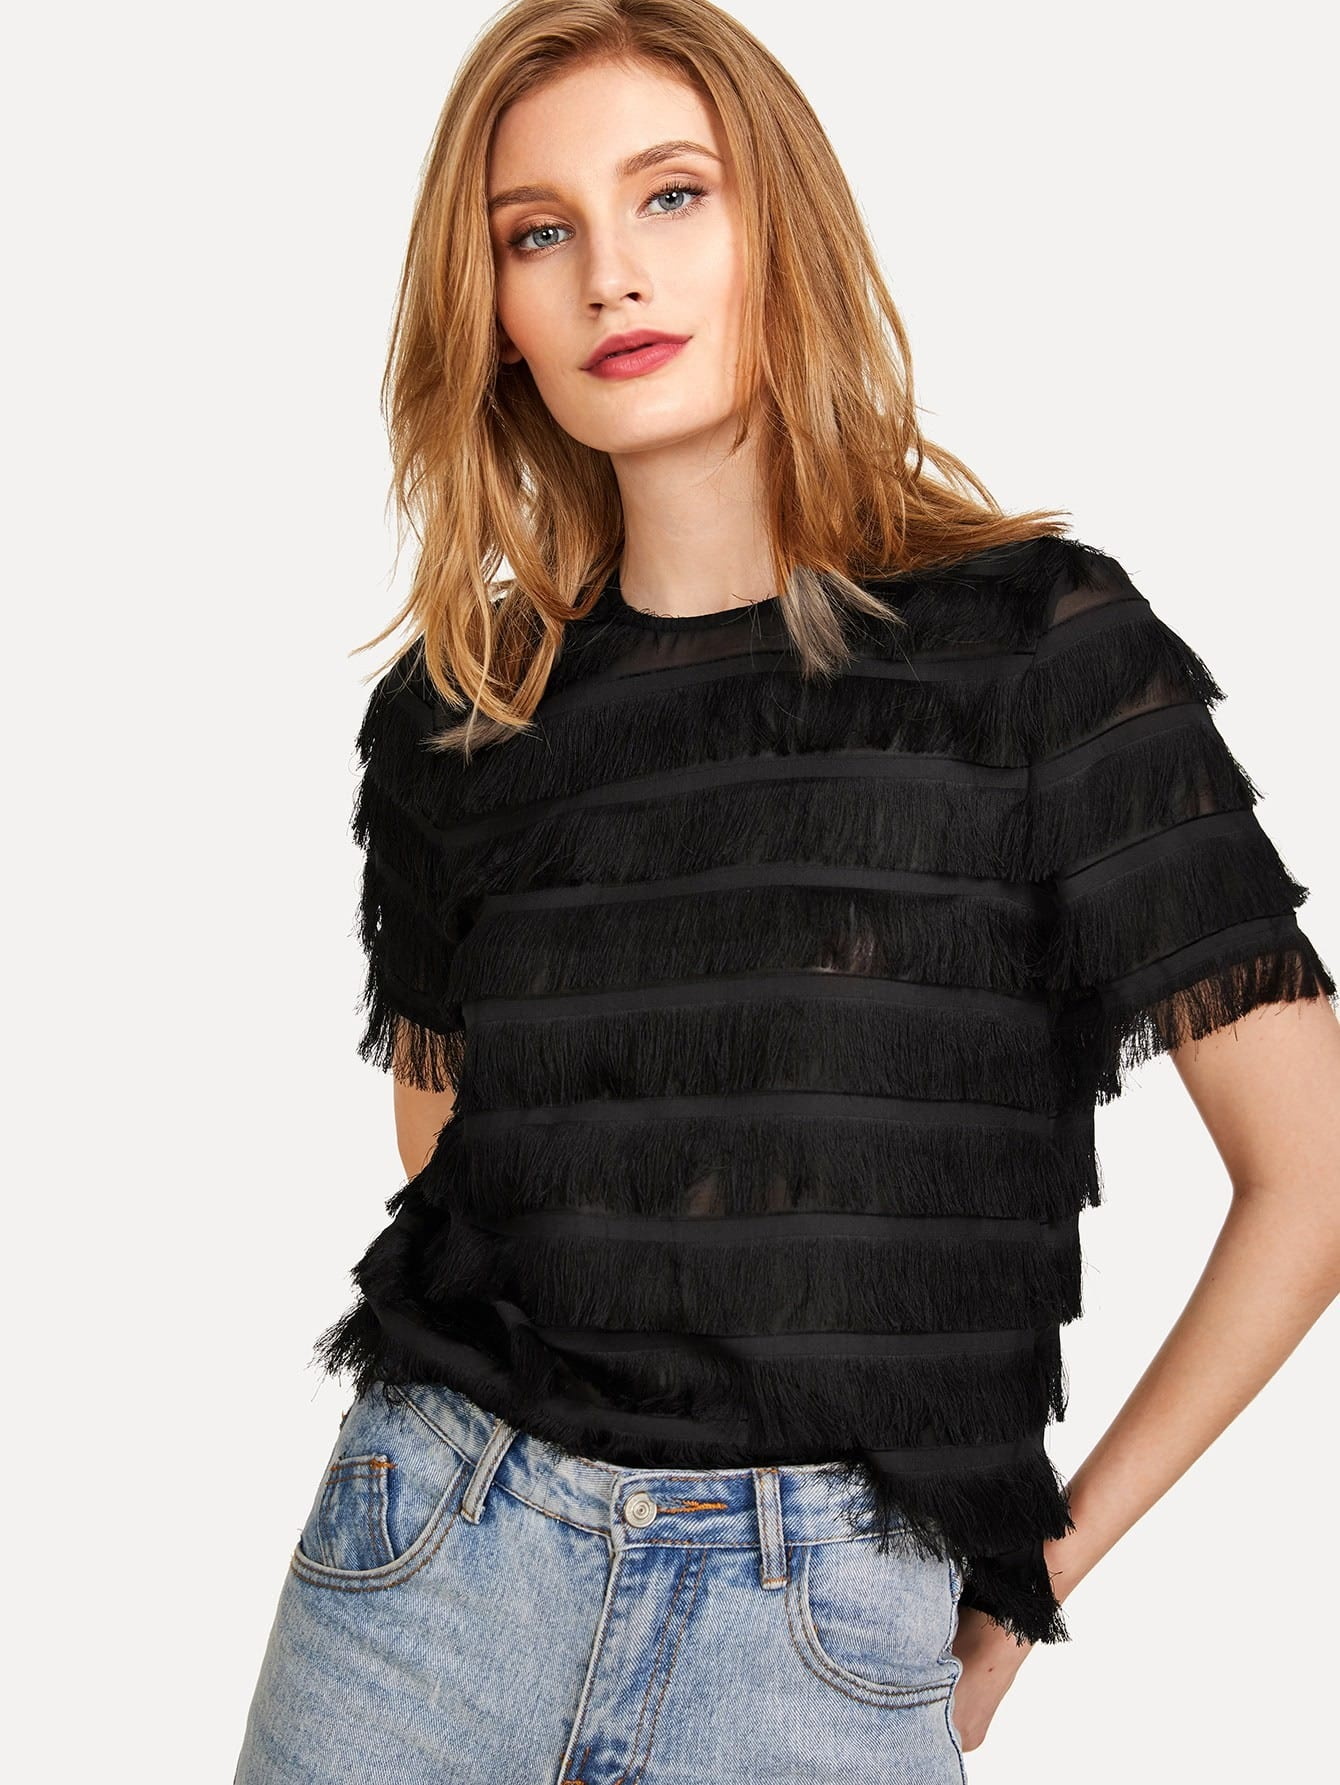 Layered Fringe Detail Keyhole Back Top layered fringe detail keyhole back top